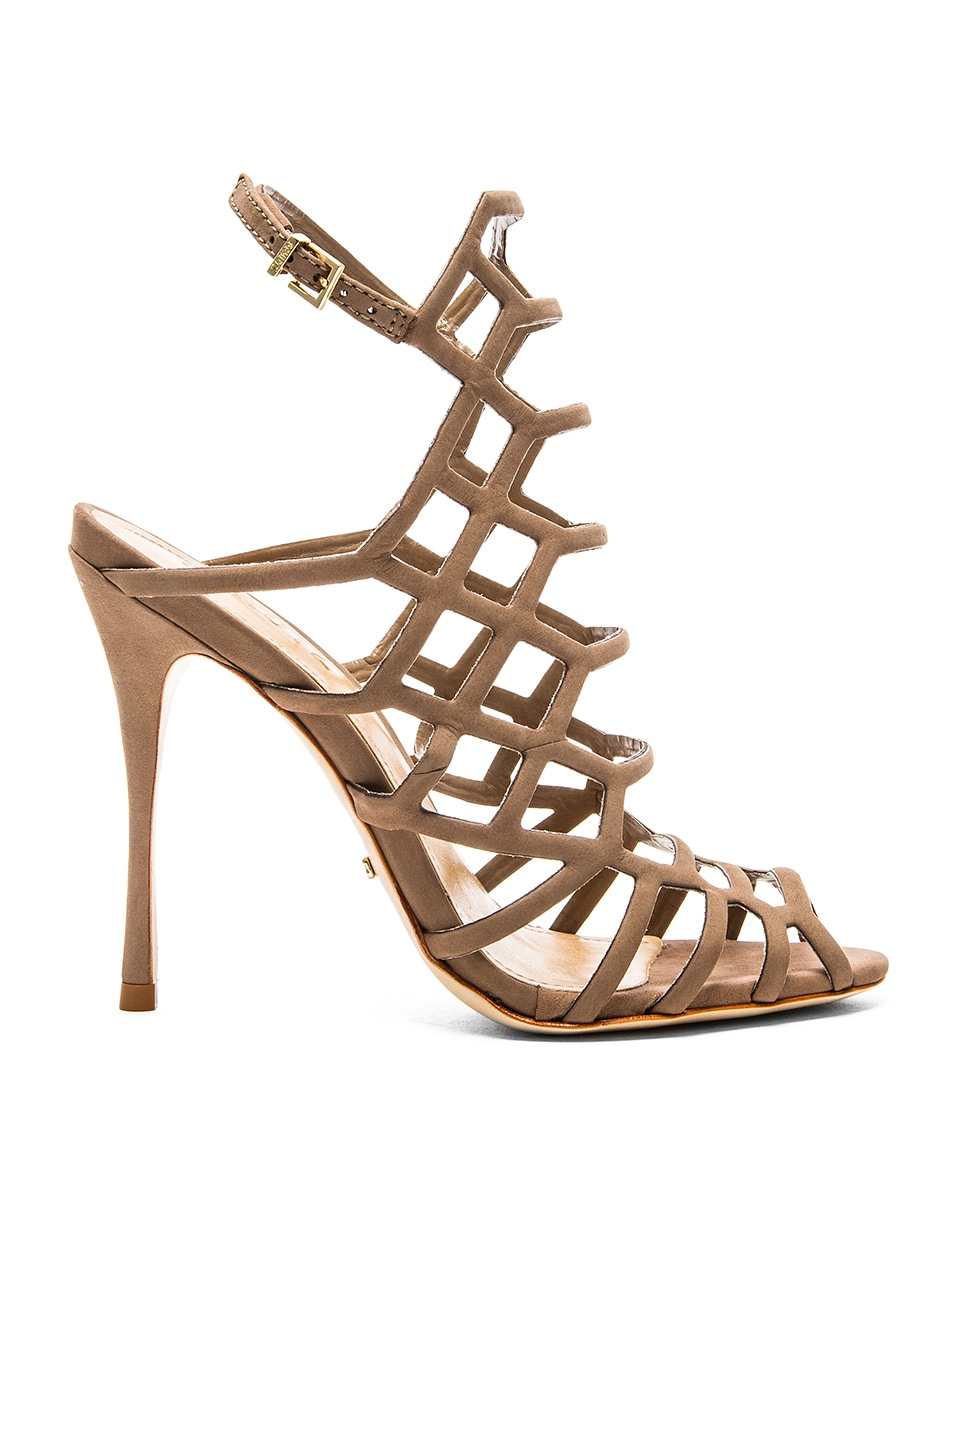 Schutz Juliana Heel in Neutral